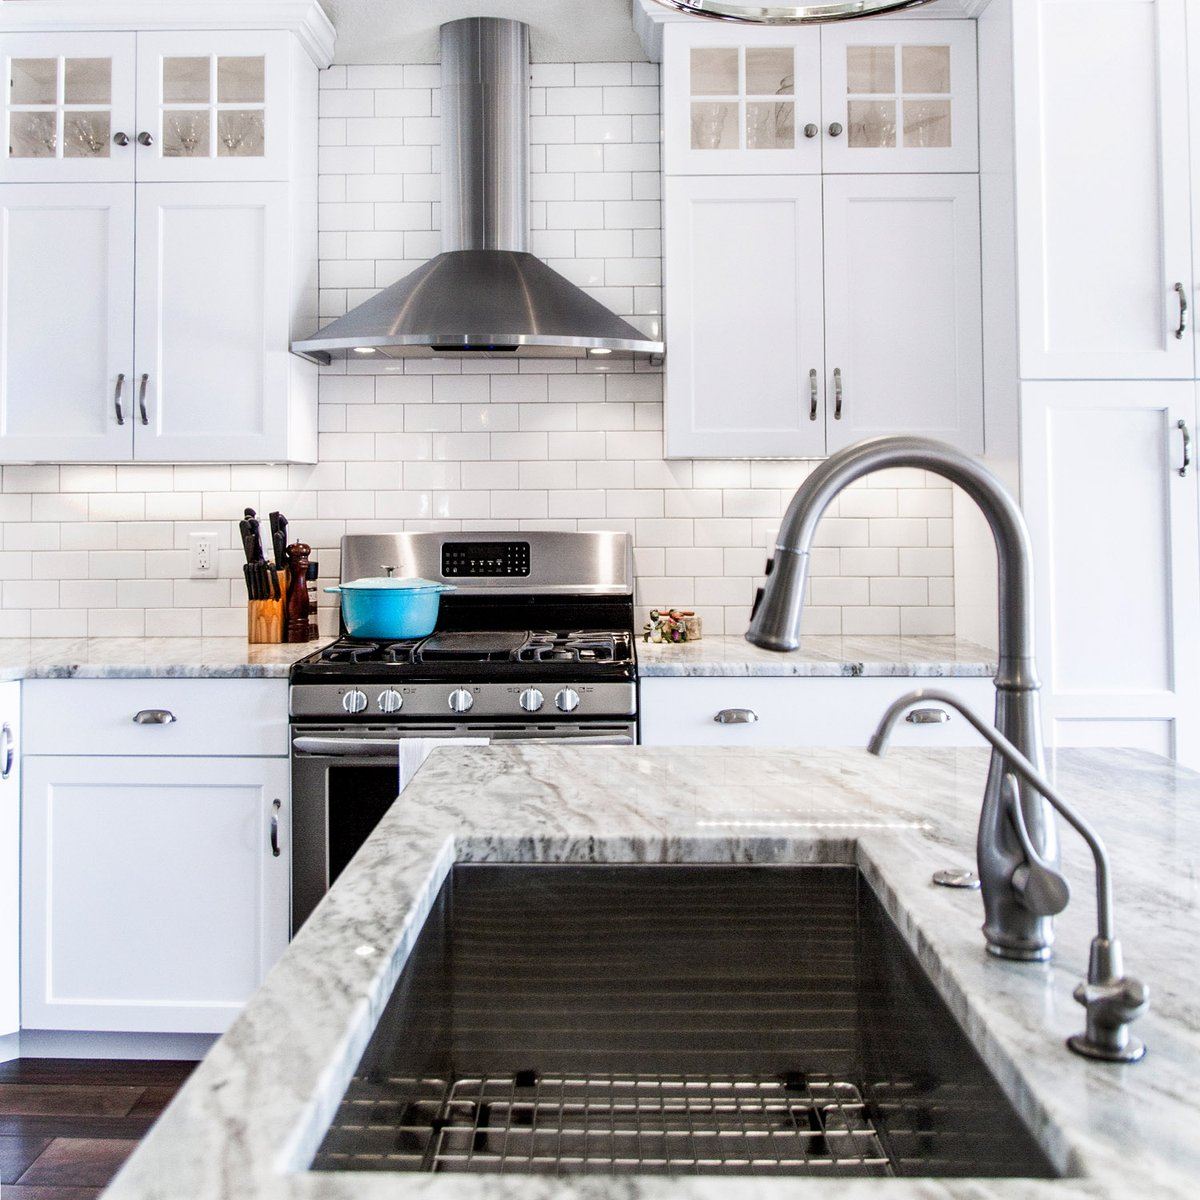 White kitchens are hot, with white on almost every surface, can make color accents POP! #farmhouse #whitefarmhouse #modernfarmhouse #farmhouseliving #farmhousedesign #farmhousestyle #homestyle #kitcheninspiration #myhousebeautiful #homestyling #homeinspo #farmhousekitchen